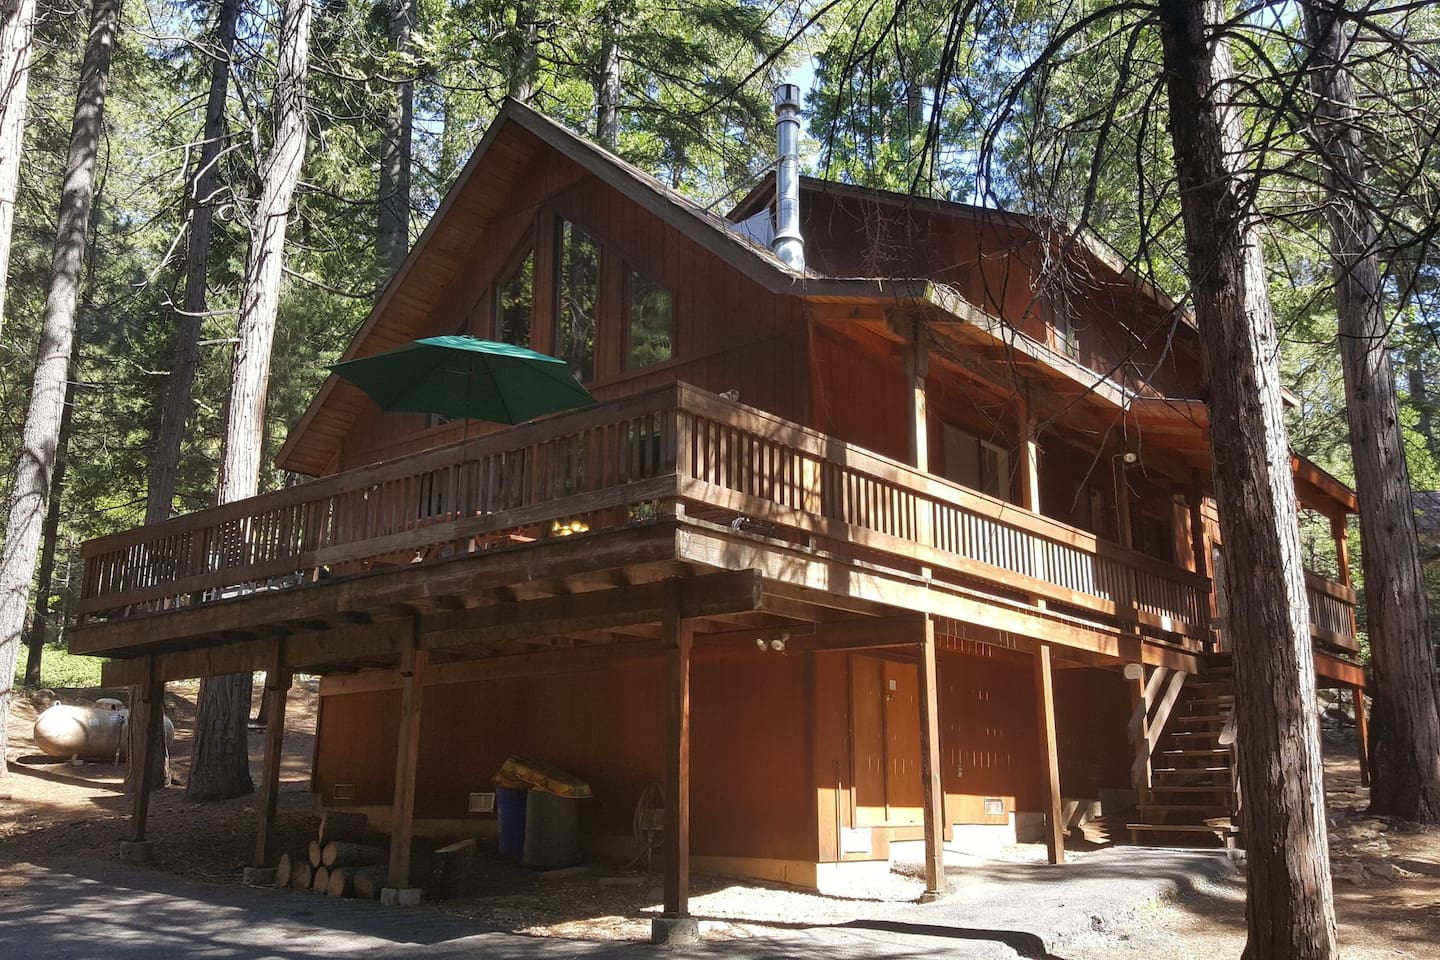 Large wrap around deck with nice views of the surrounding forest